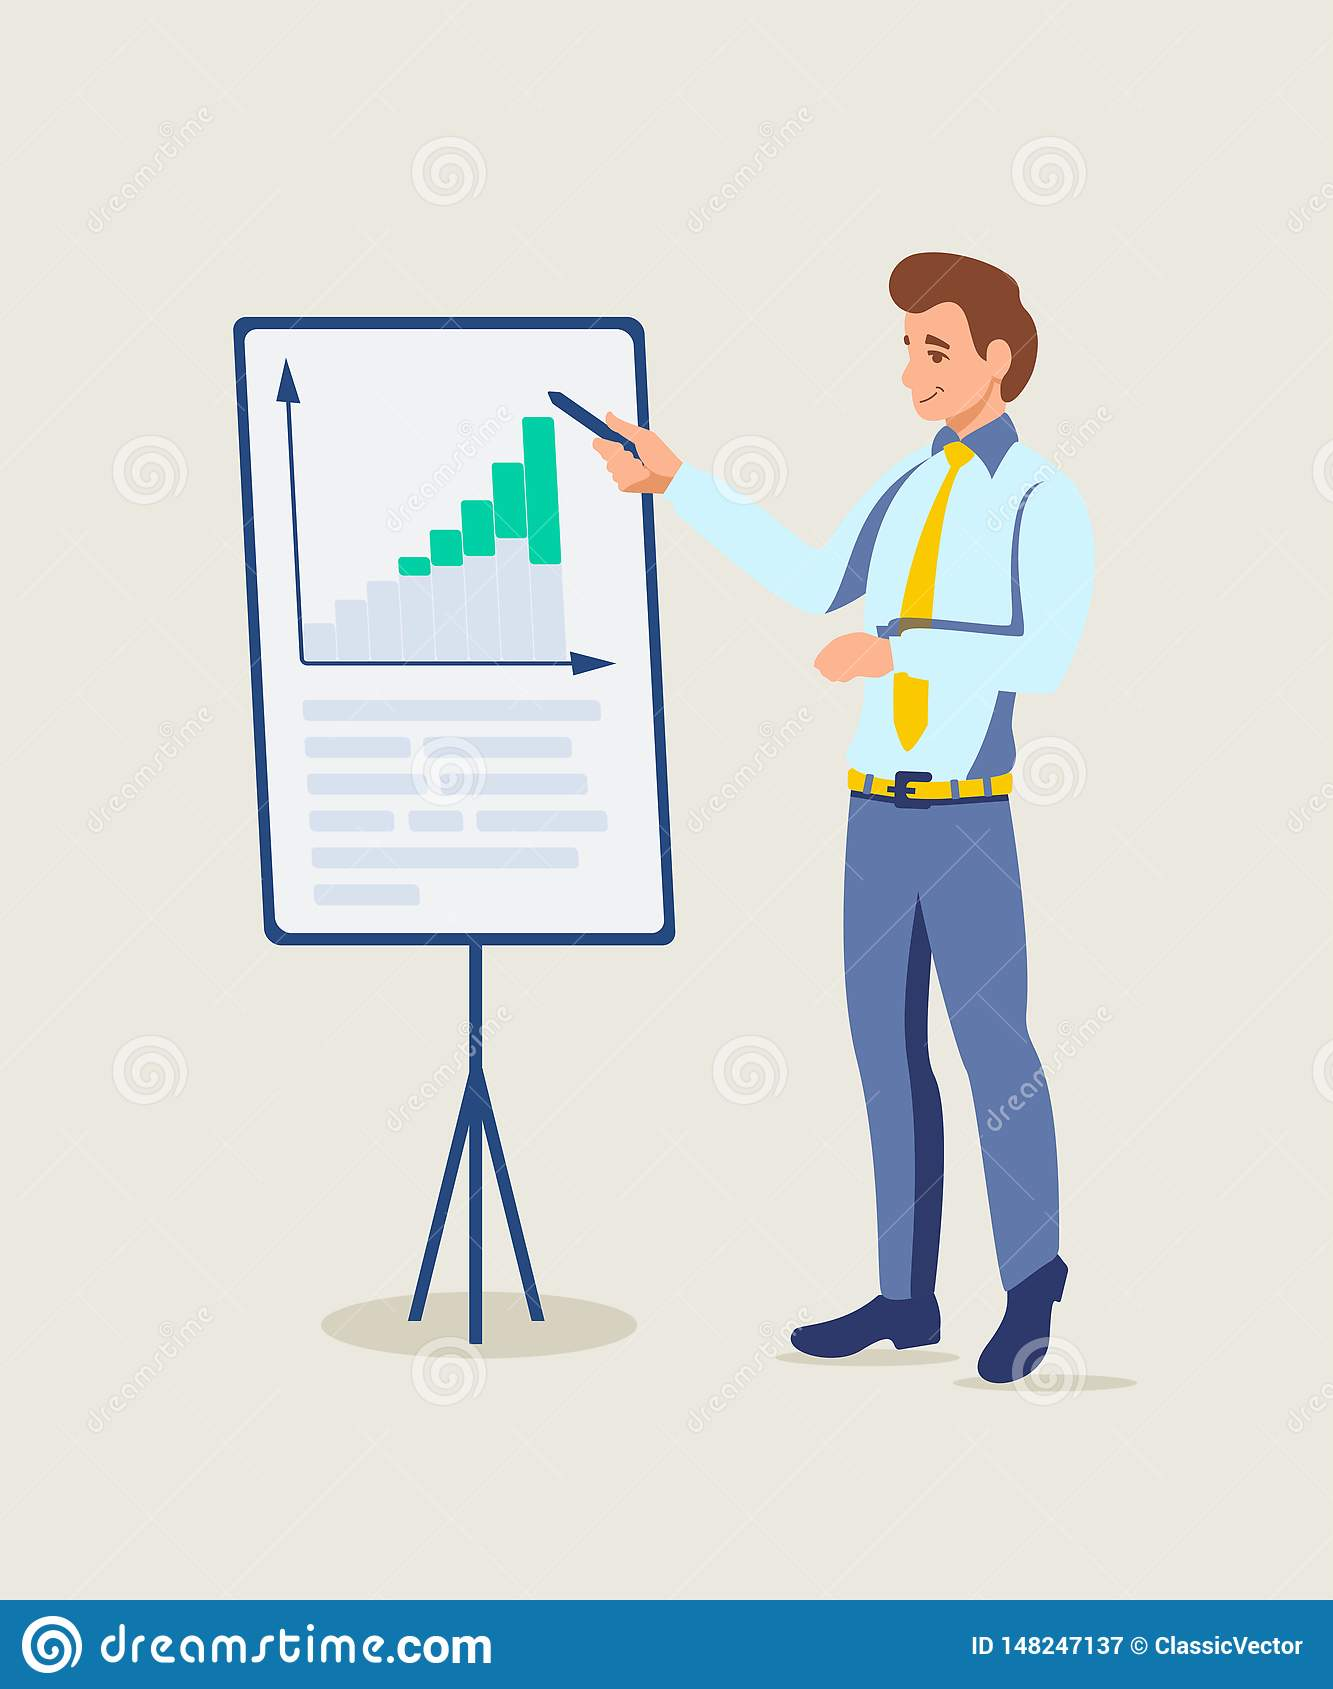 Business coach presentation vector illustration